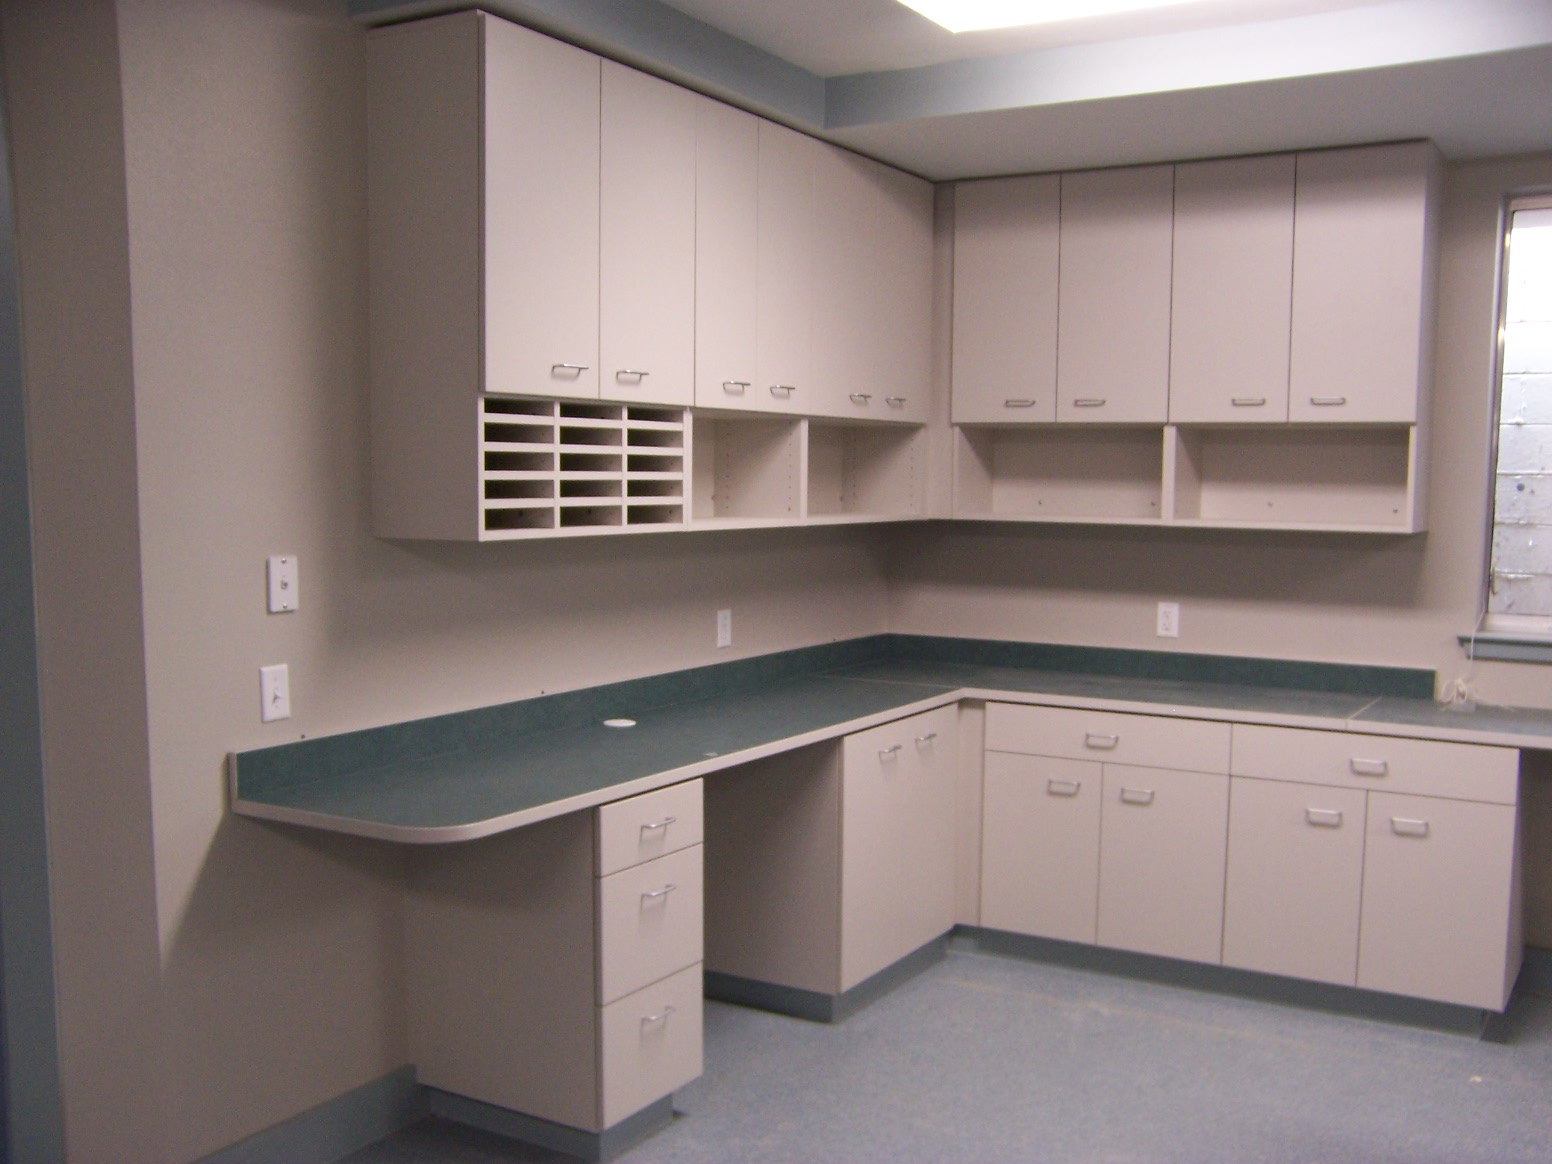 Techline Furniture, Cabinetry and Closets, Providing design and ...